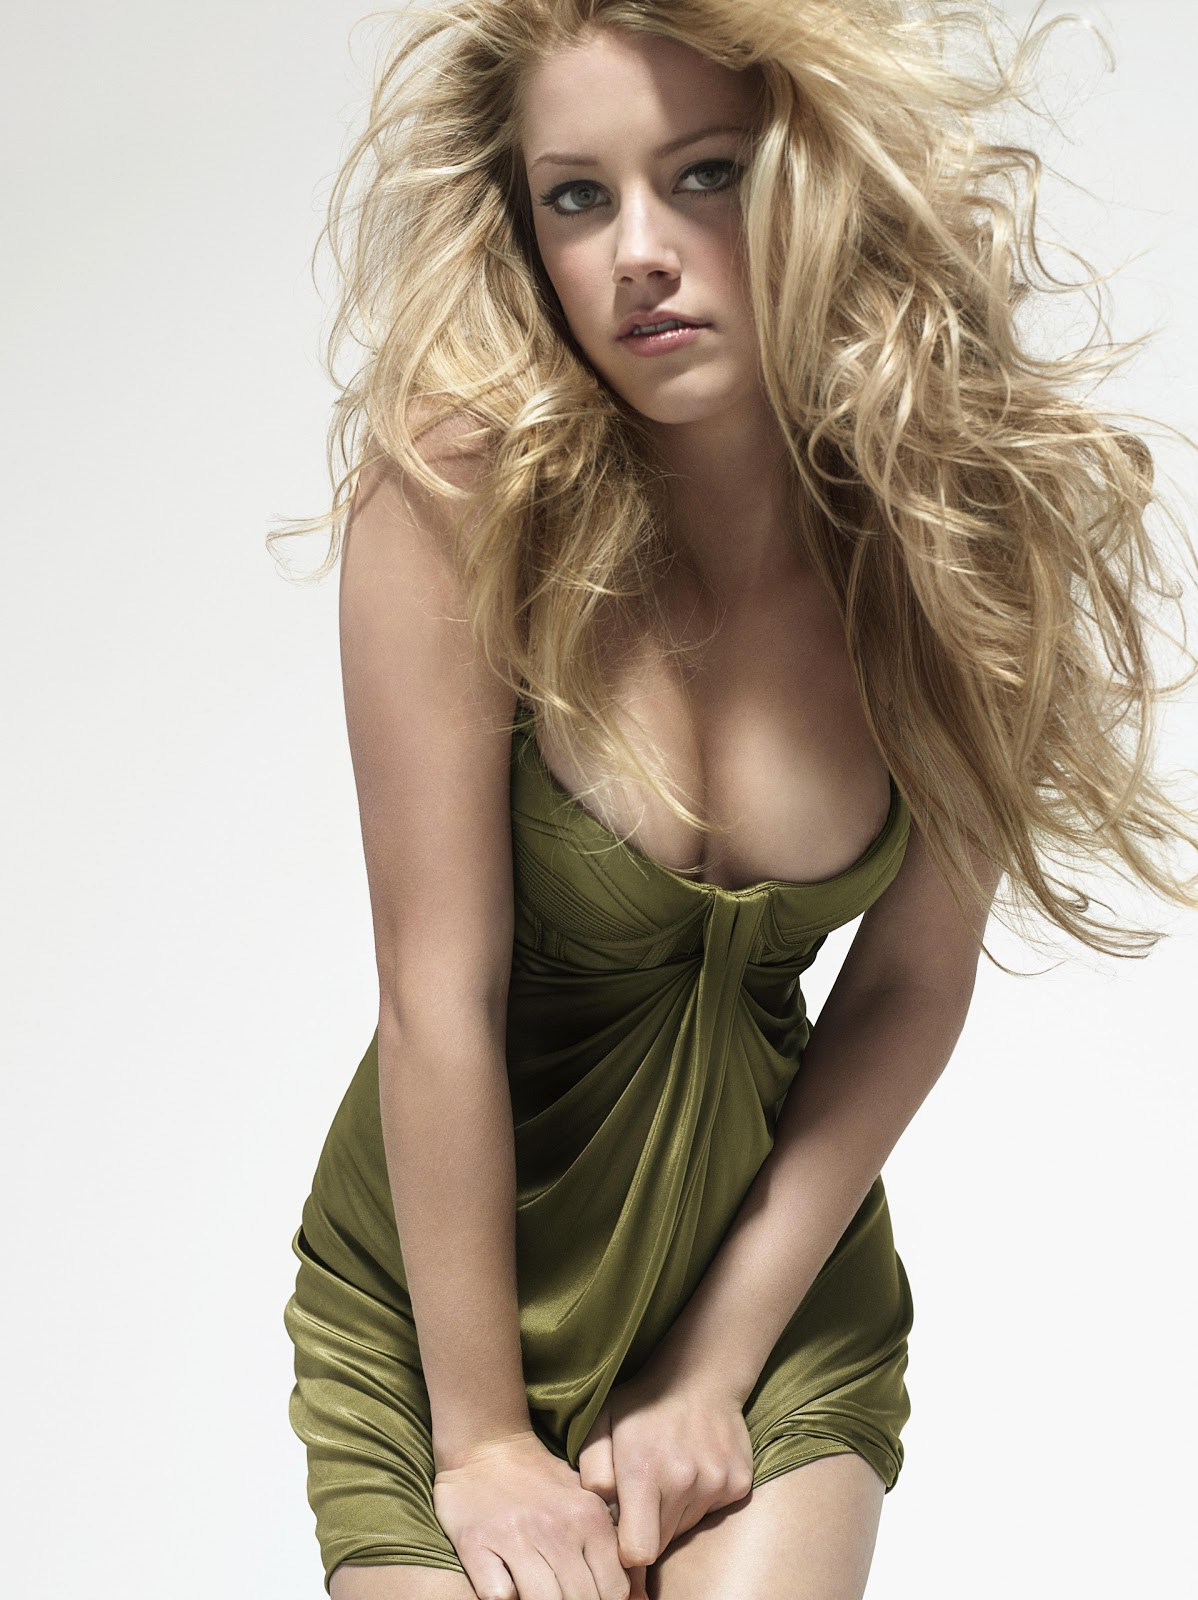 Pretty In Pink 10 Pink Makeup Looks With Voluminous Curly: Hot Girls XXX: Amber Heard Hot